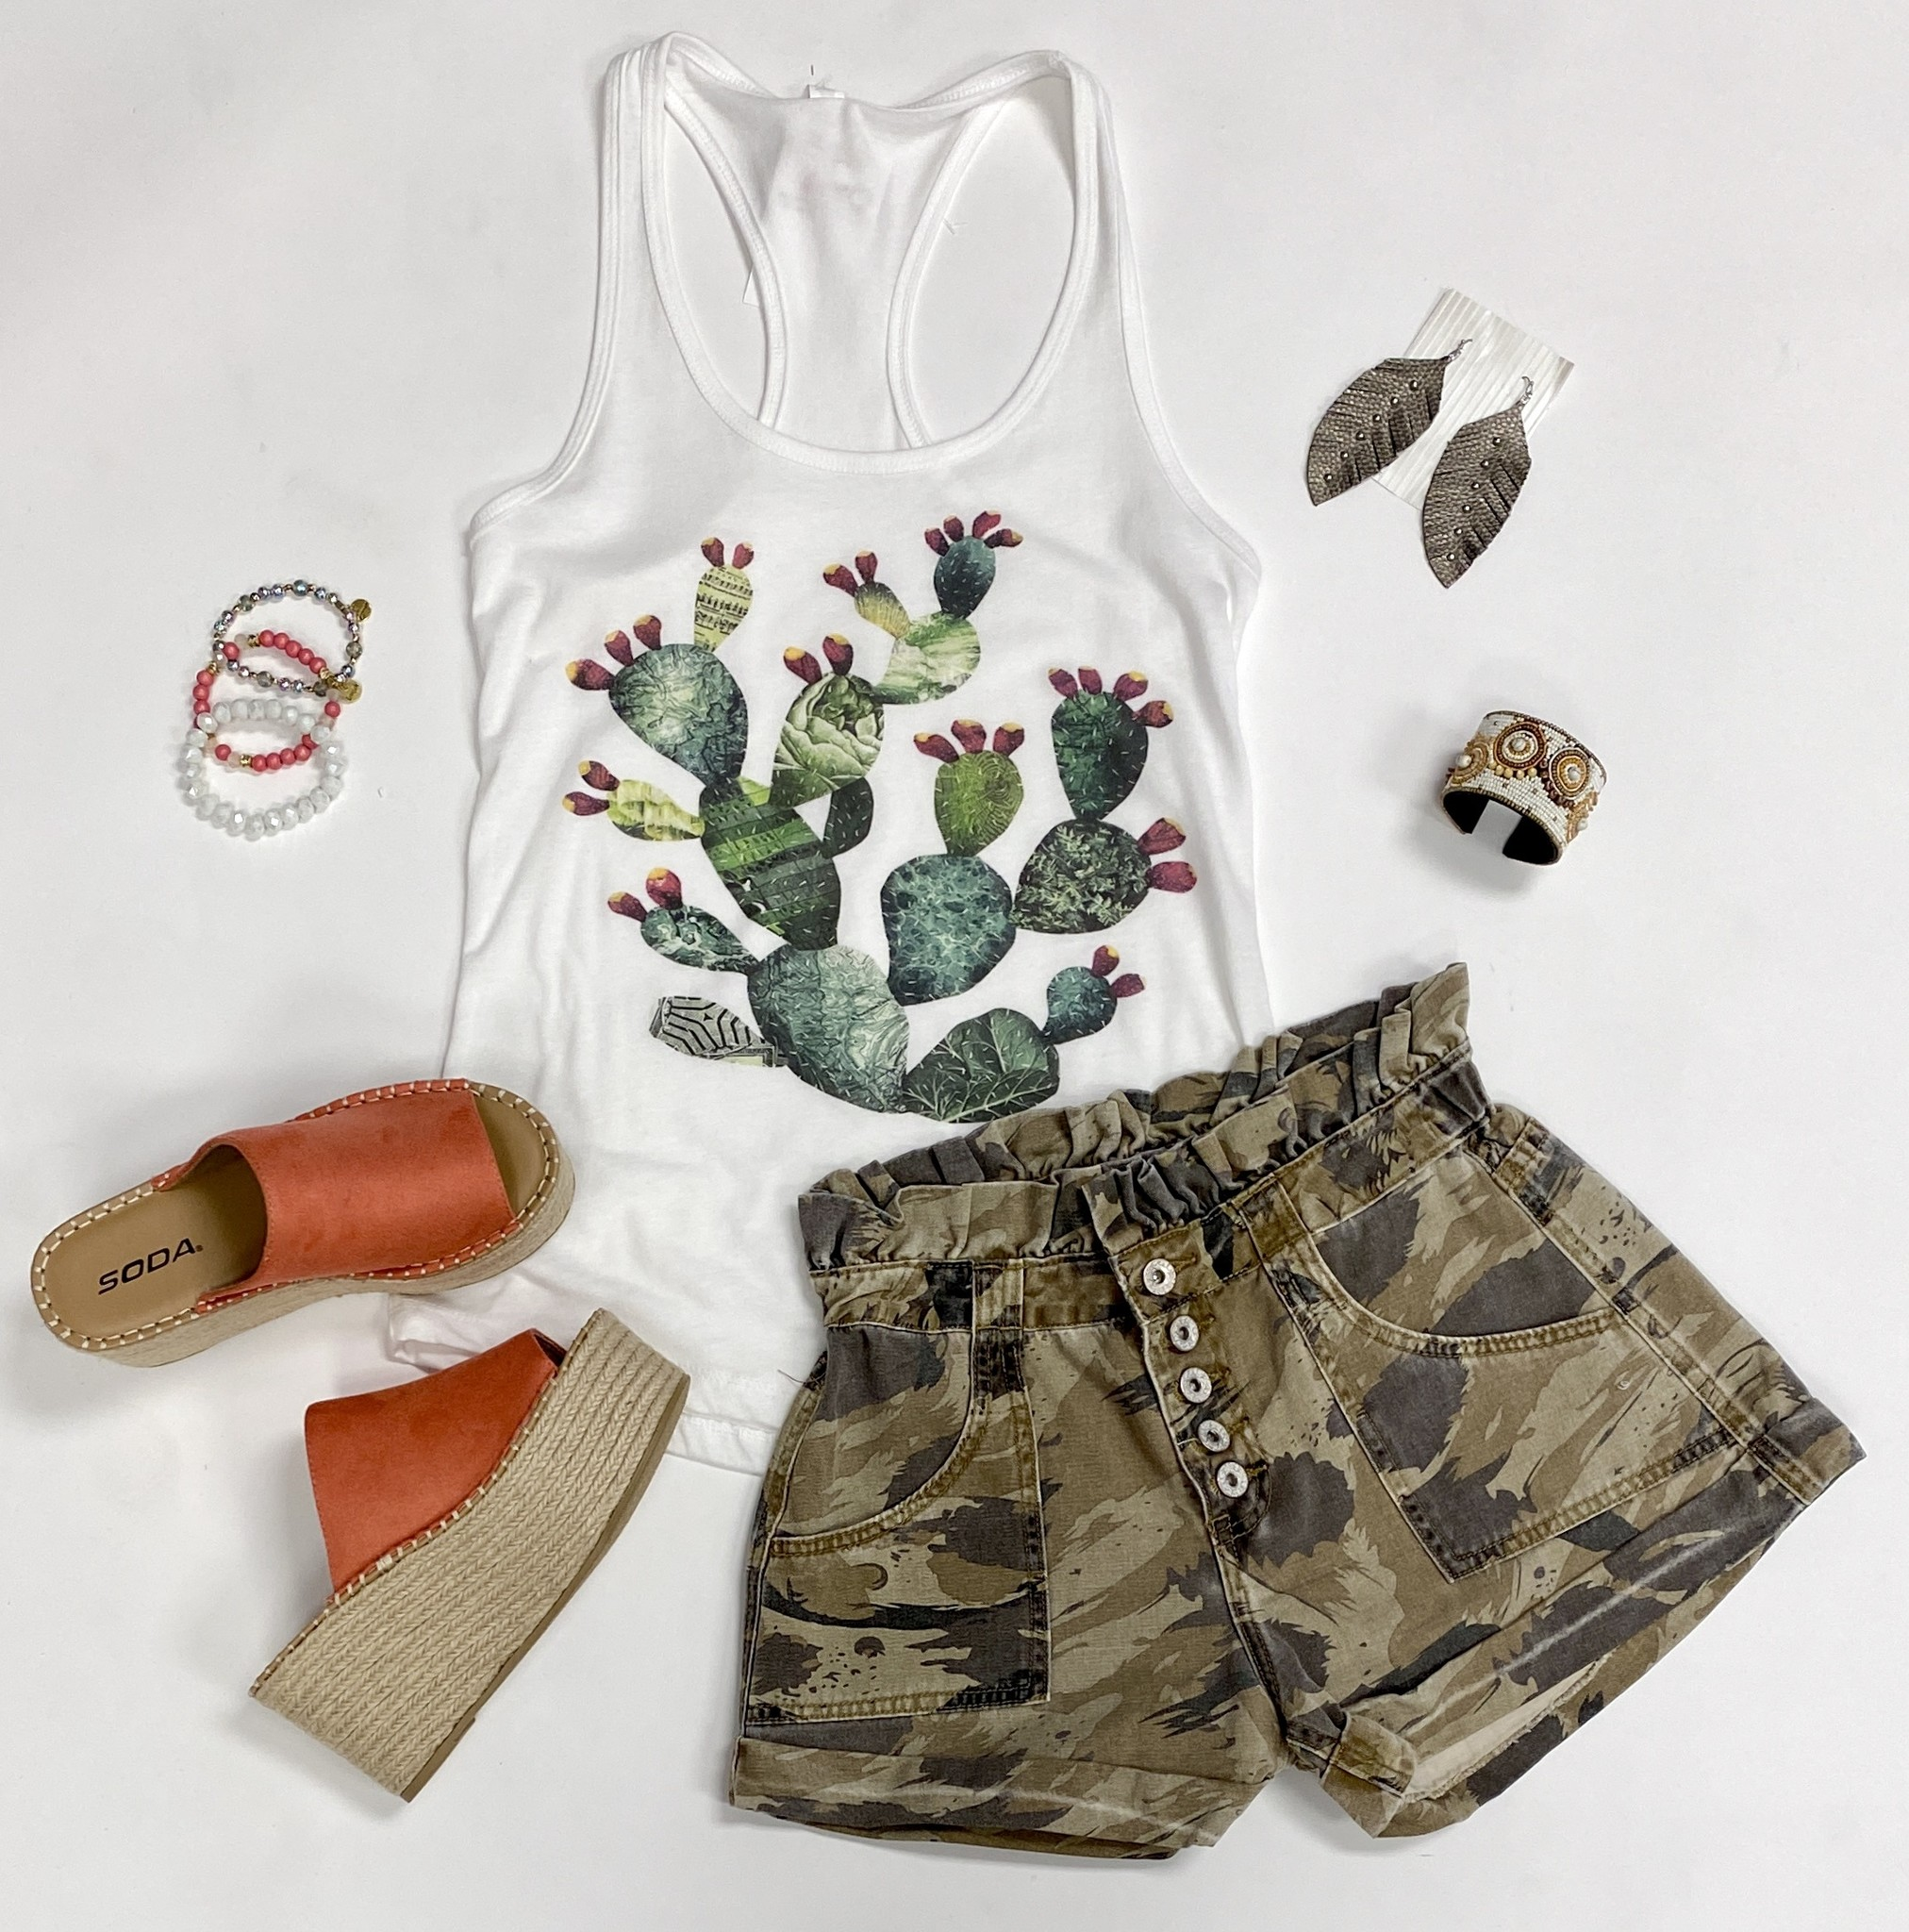 White Tank Top with Prickly Pear Cactus